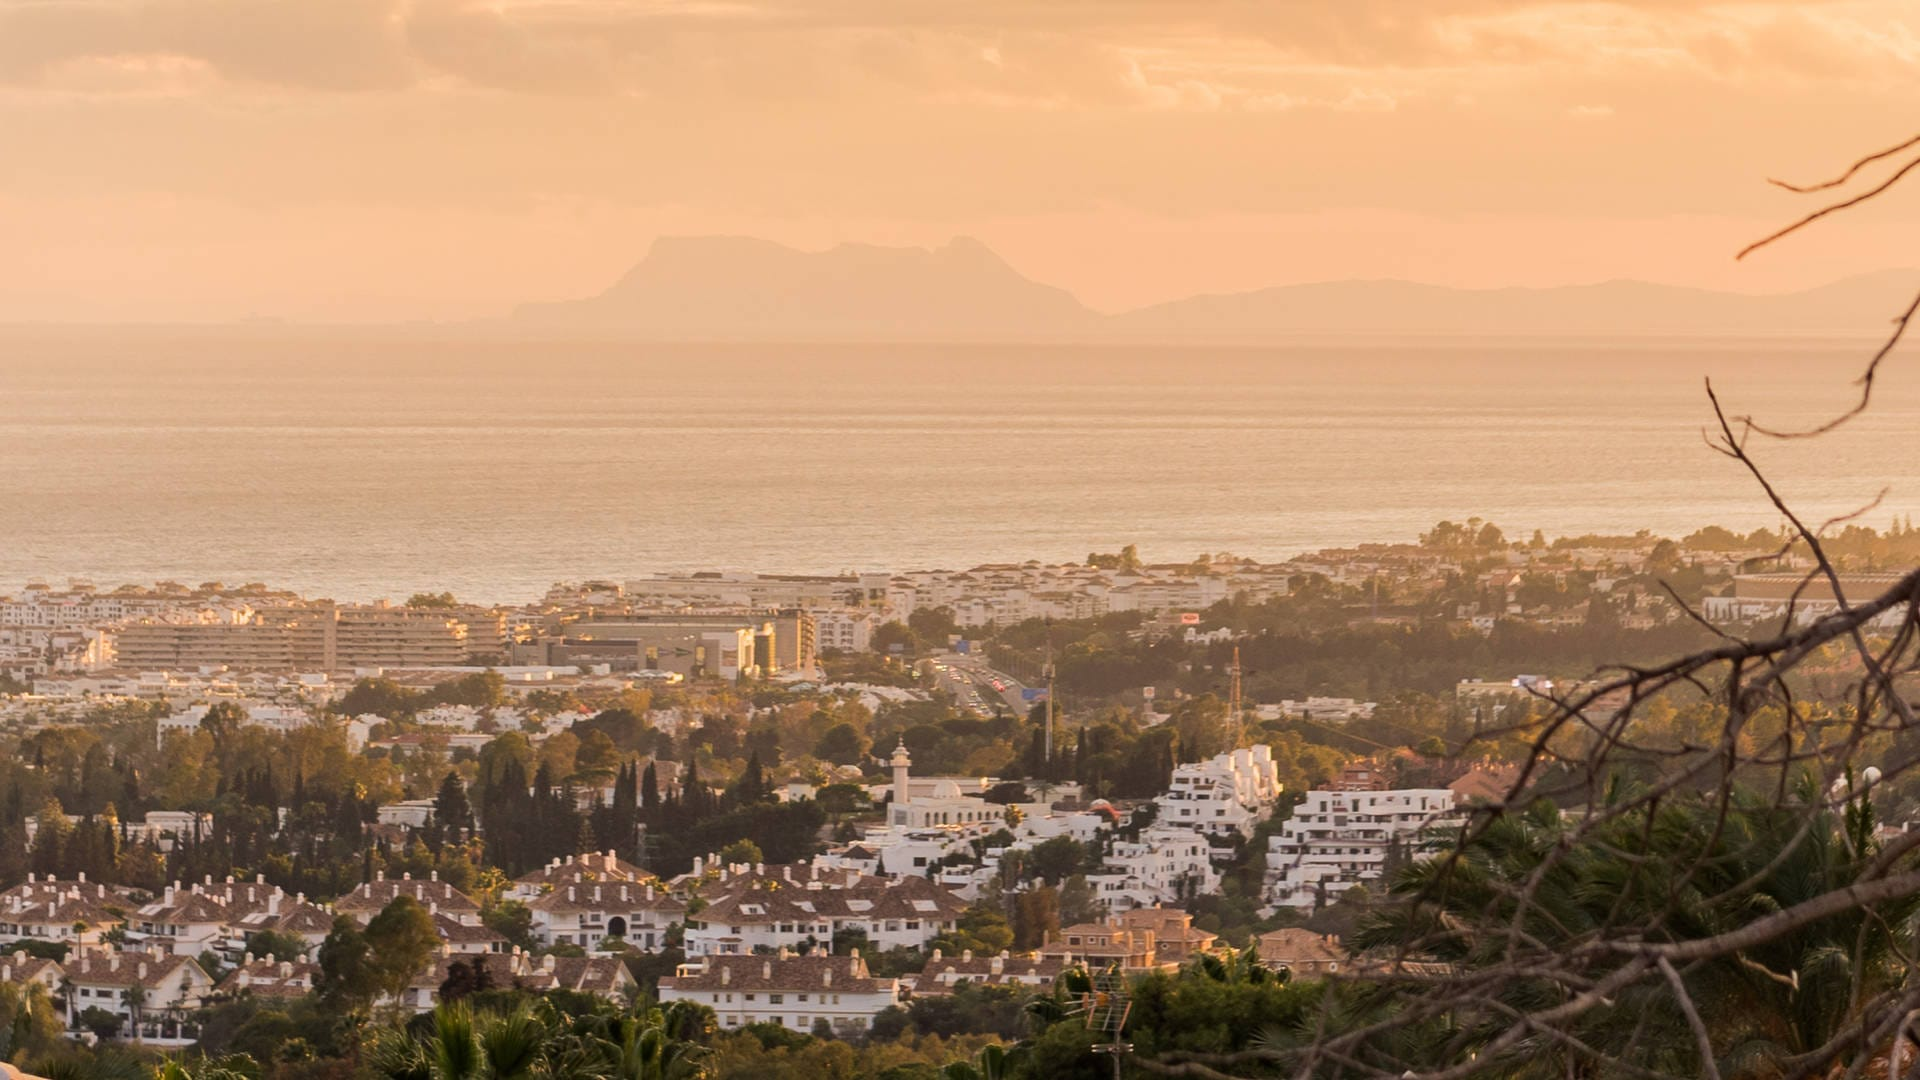 Bespoke buying service in Marbella